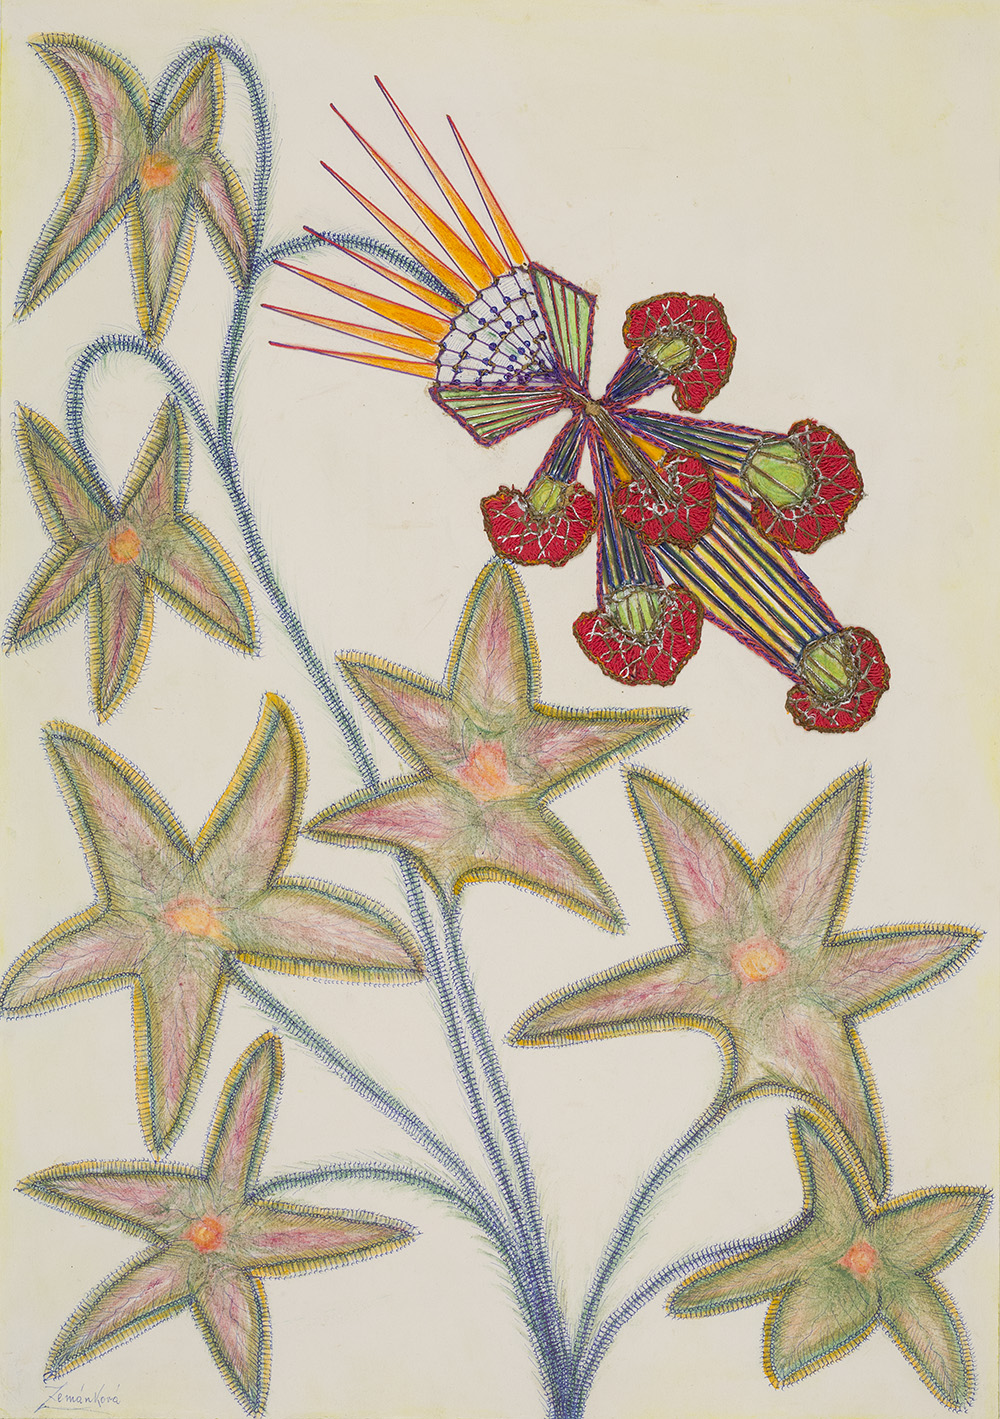 Anna Zemánková,    Untitled  , 1970s, Pastel, ball point pen and embroidery on paper, 24.61 x 17.72 inches, 62.5 x 45 cm, AZe 589